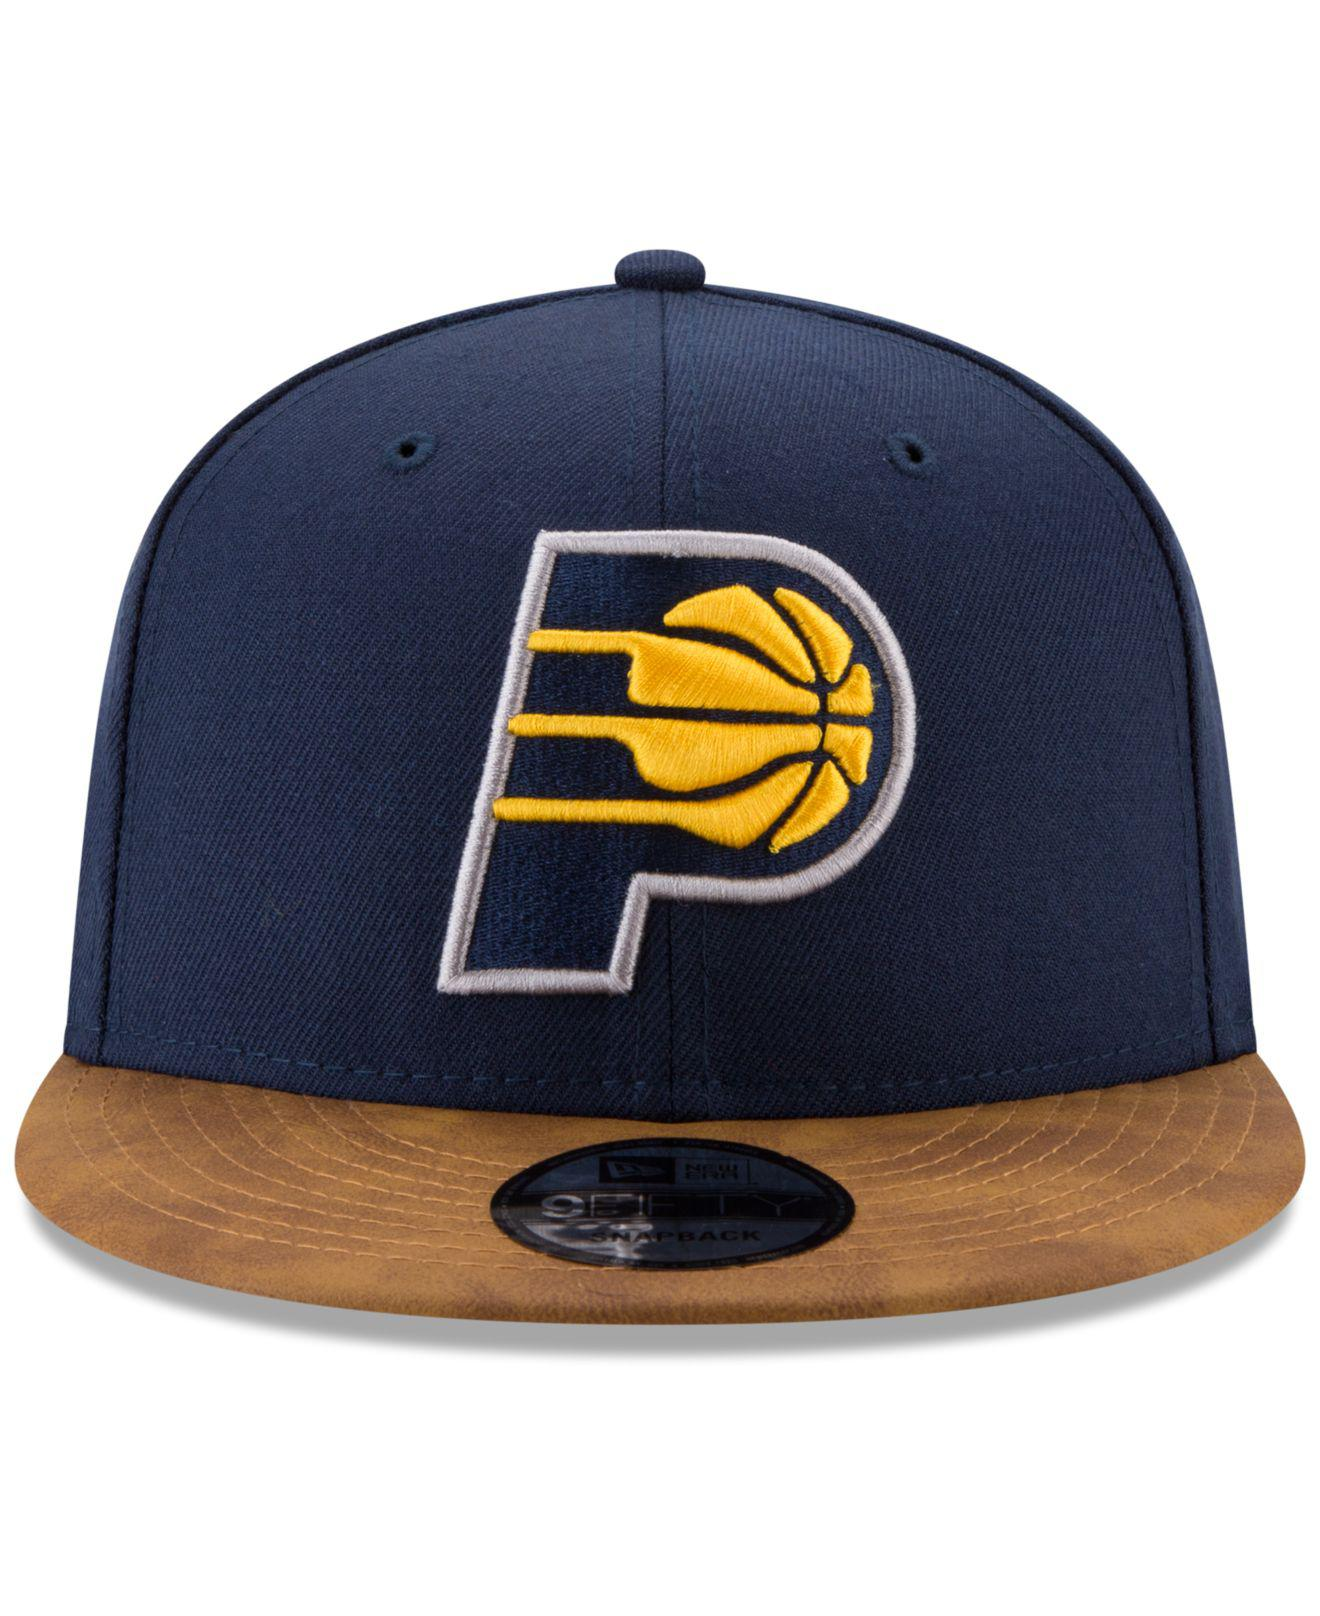 0e6c1240280 ... top quality lyst ktz indiana pacers team butter 59fifty snapback cap in  blue for men a602c